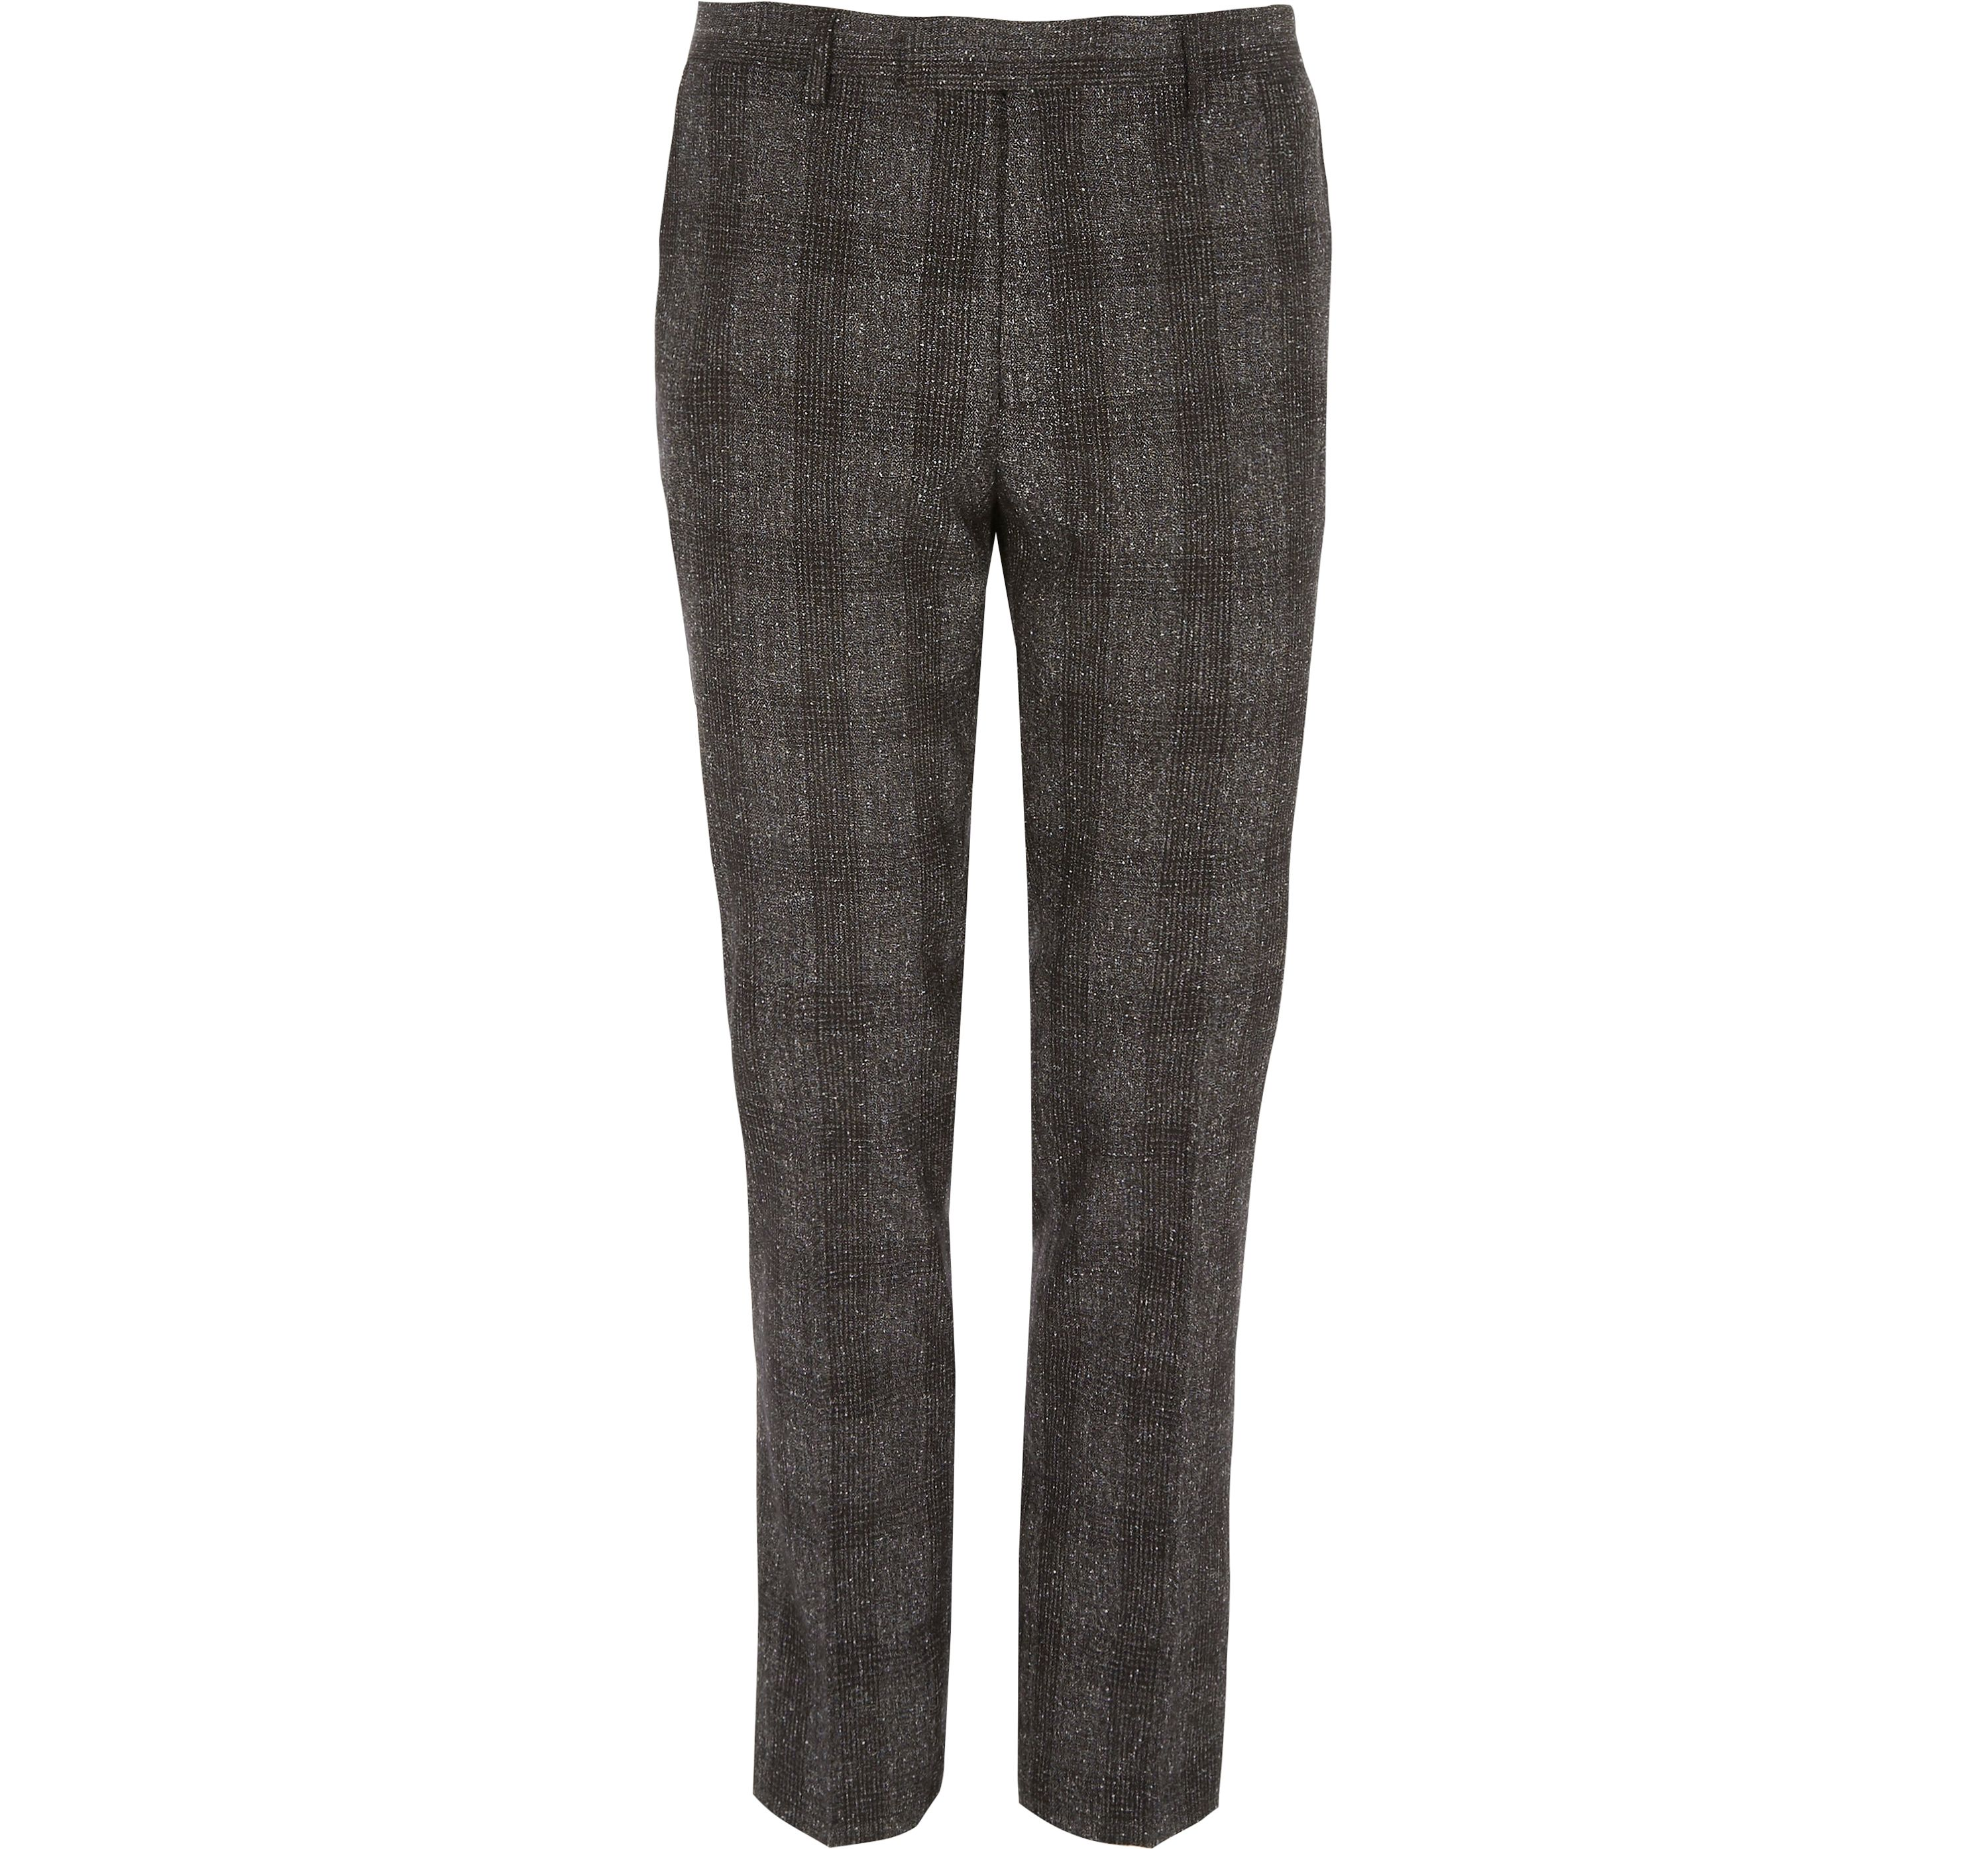 River Island Mens Grey check skinny suit trousers